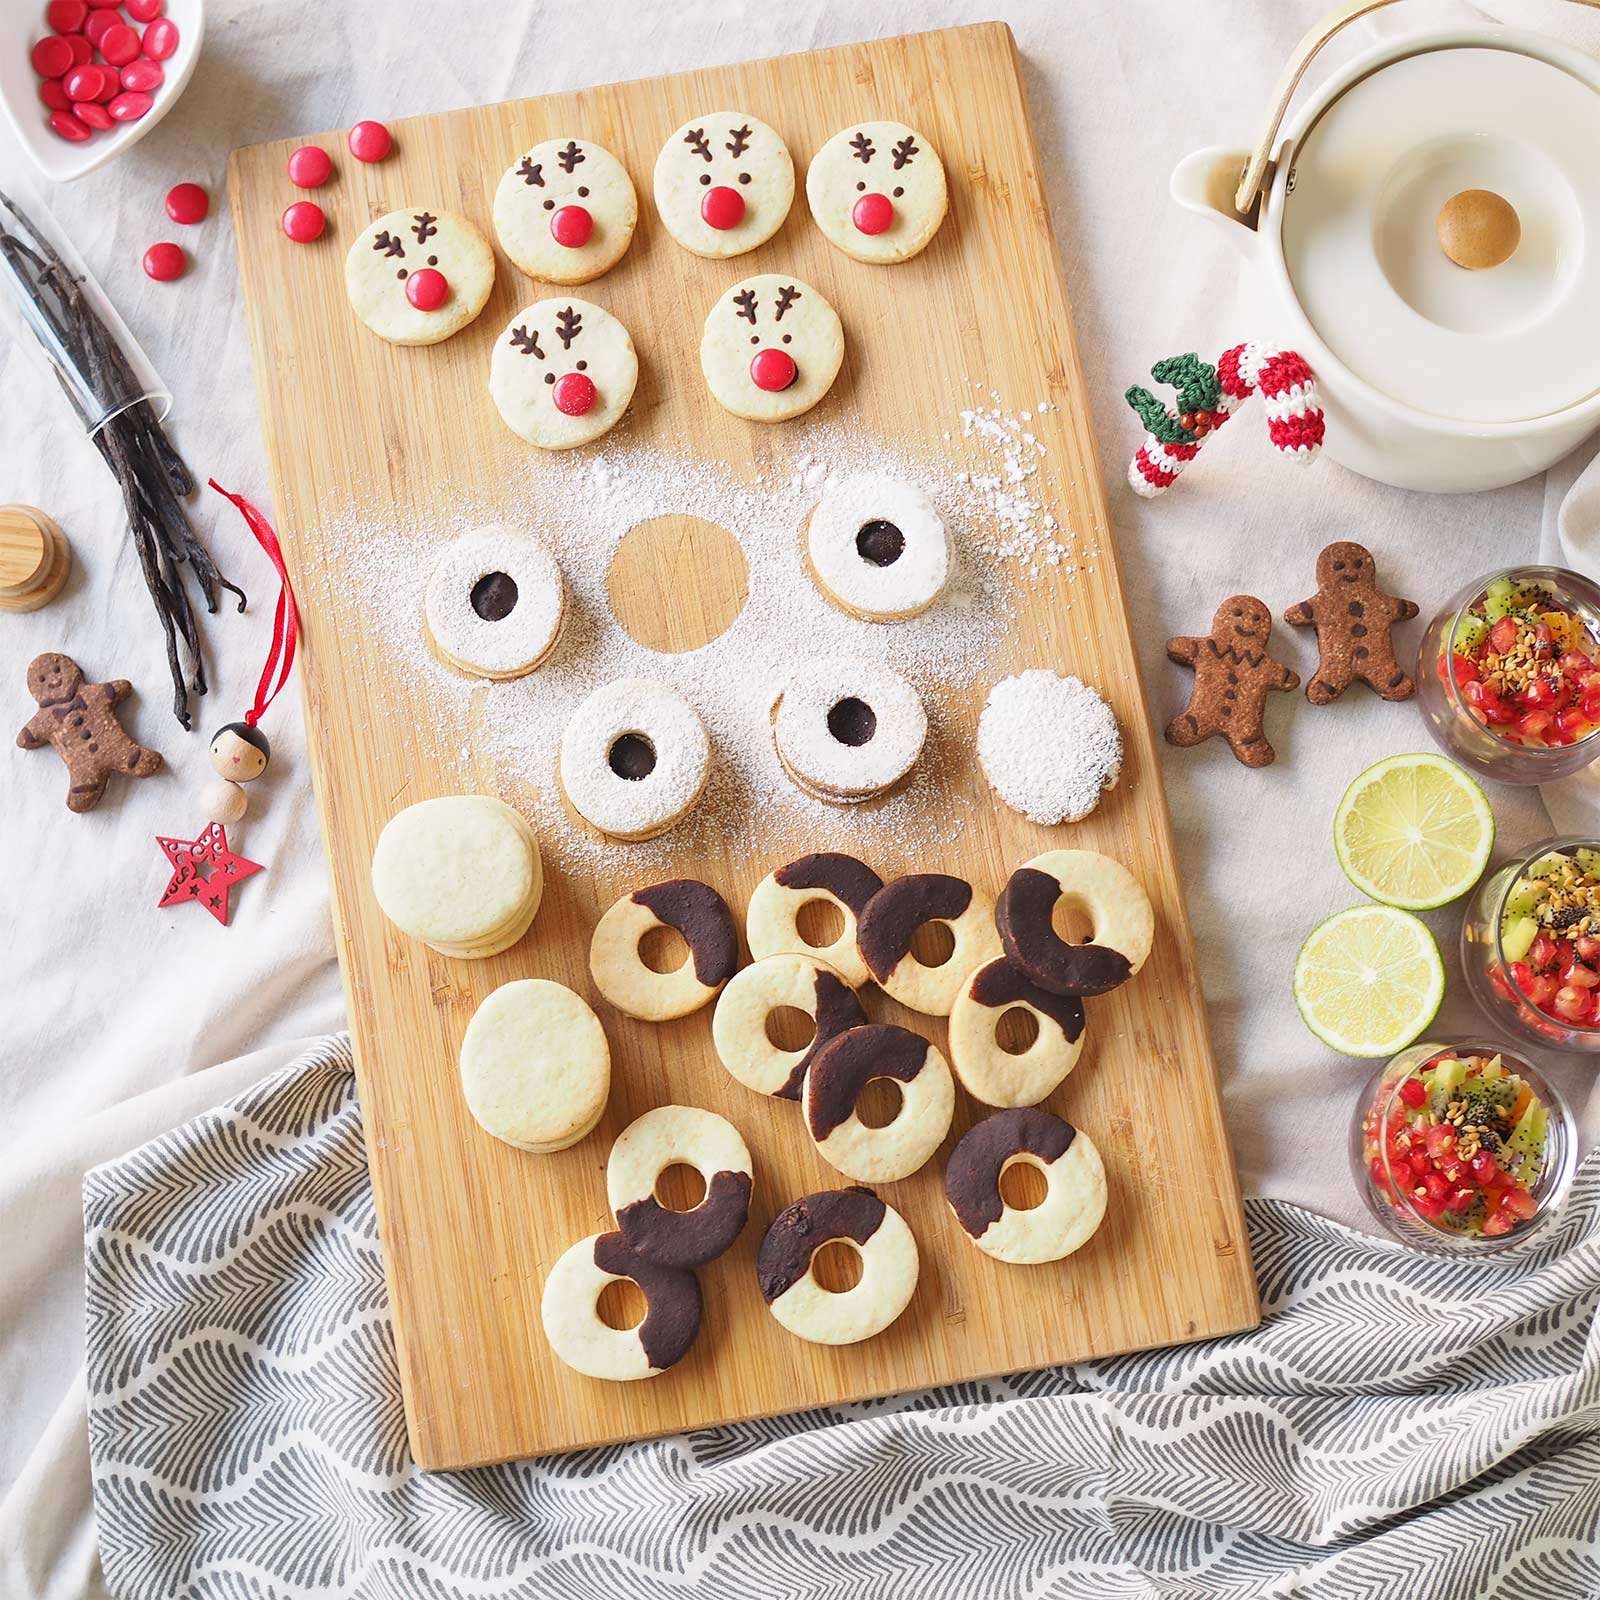 rudolph-biscuits-sable-noel-julieetsesfolies-laboutiquedemelimelo